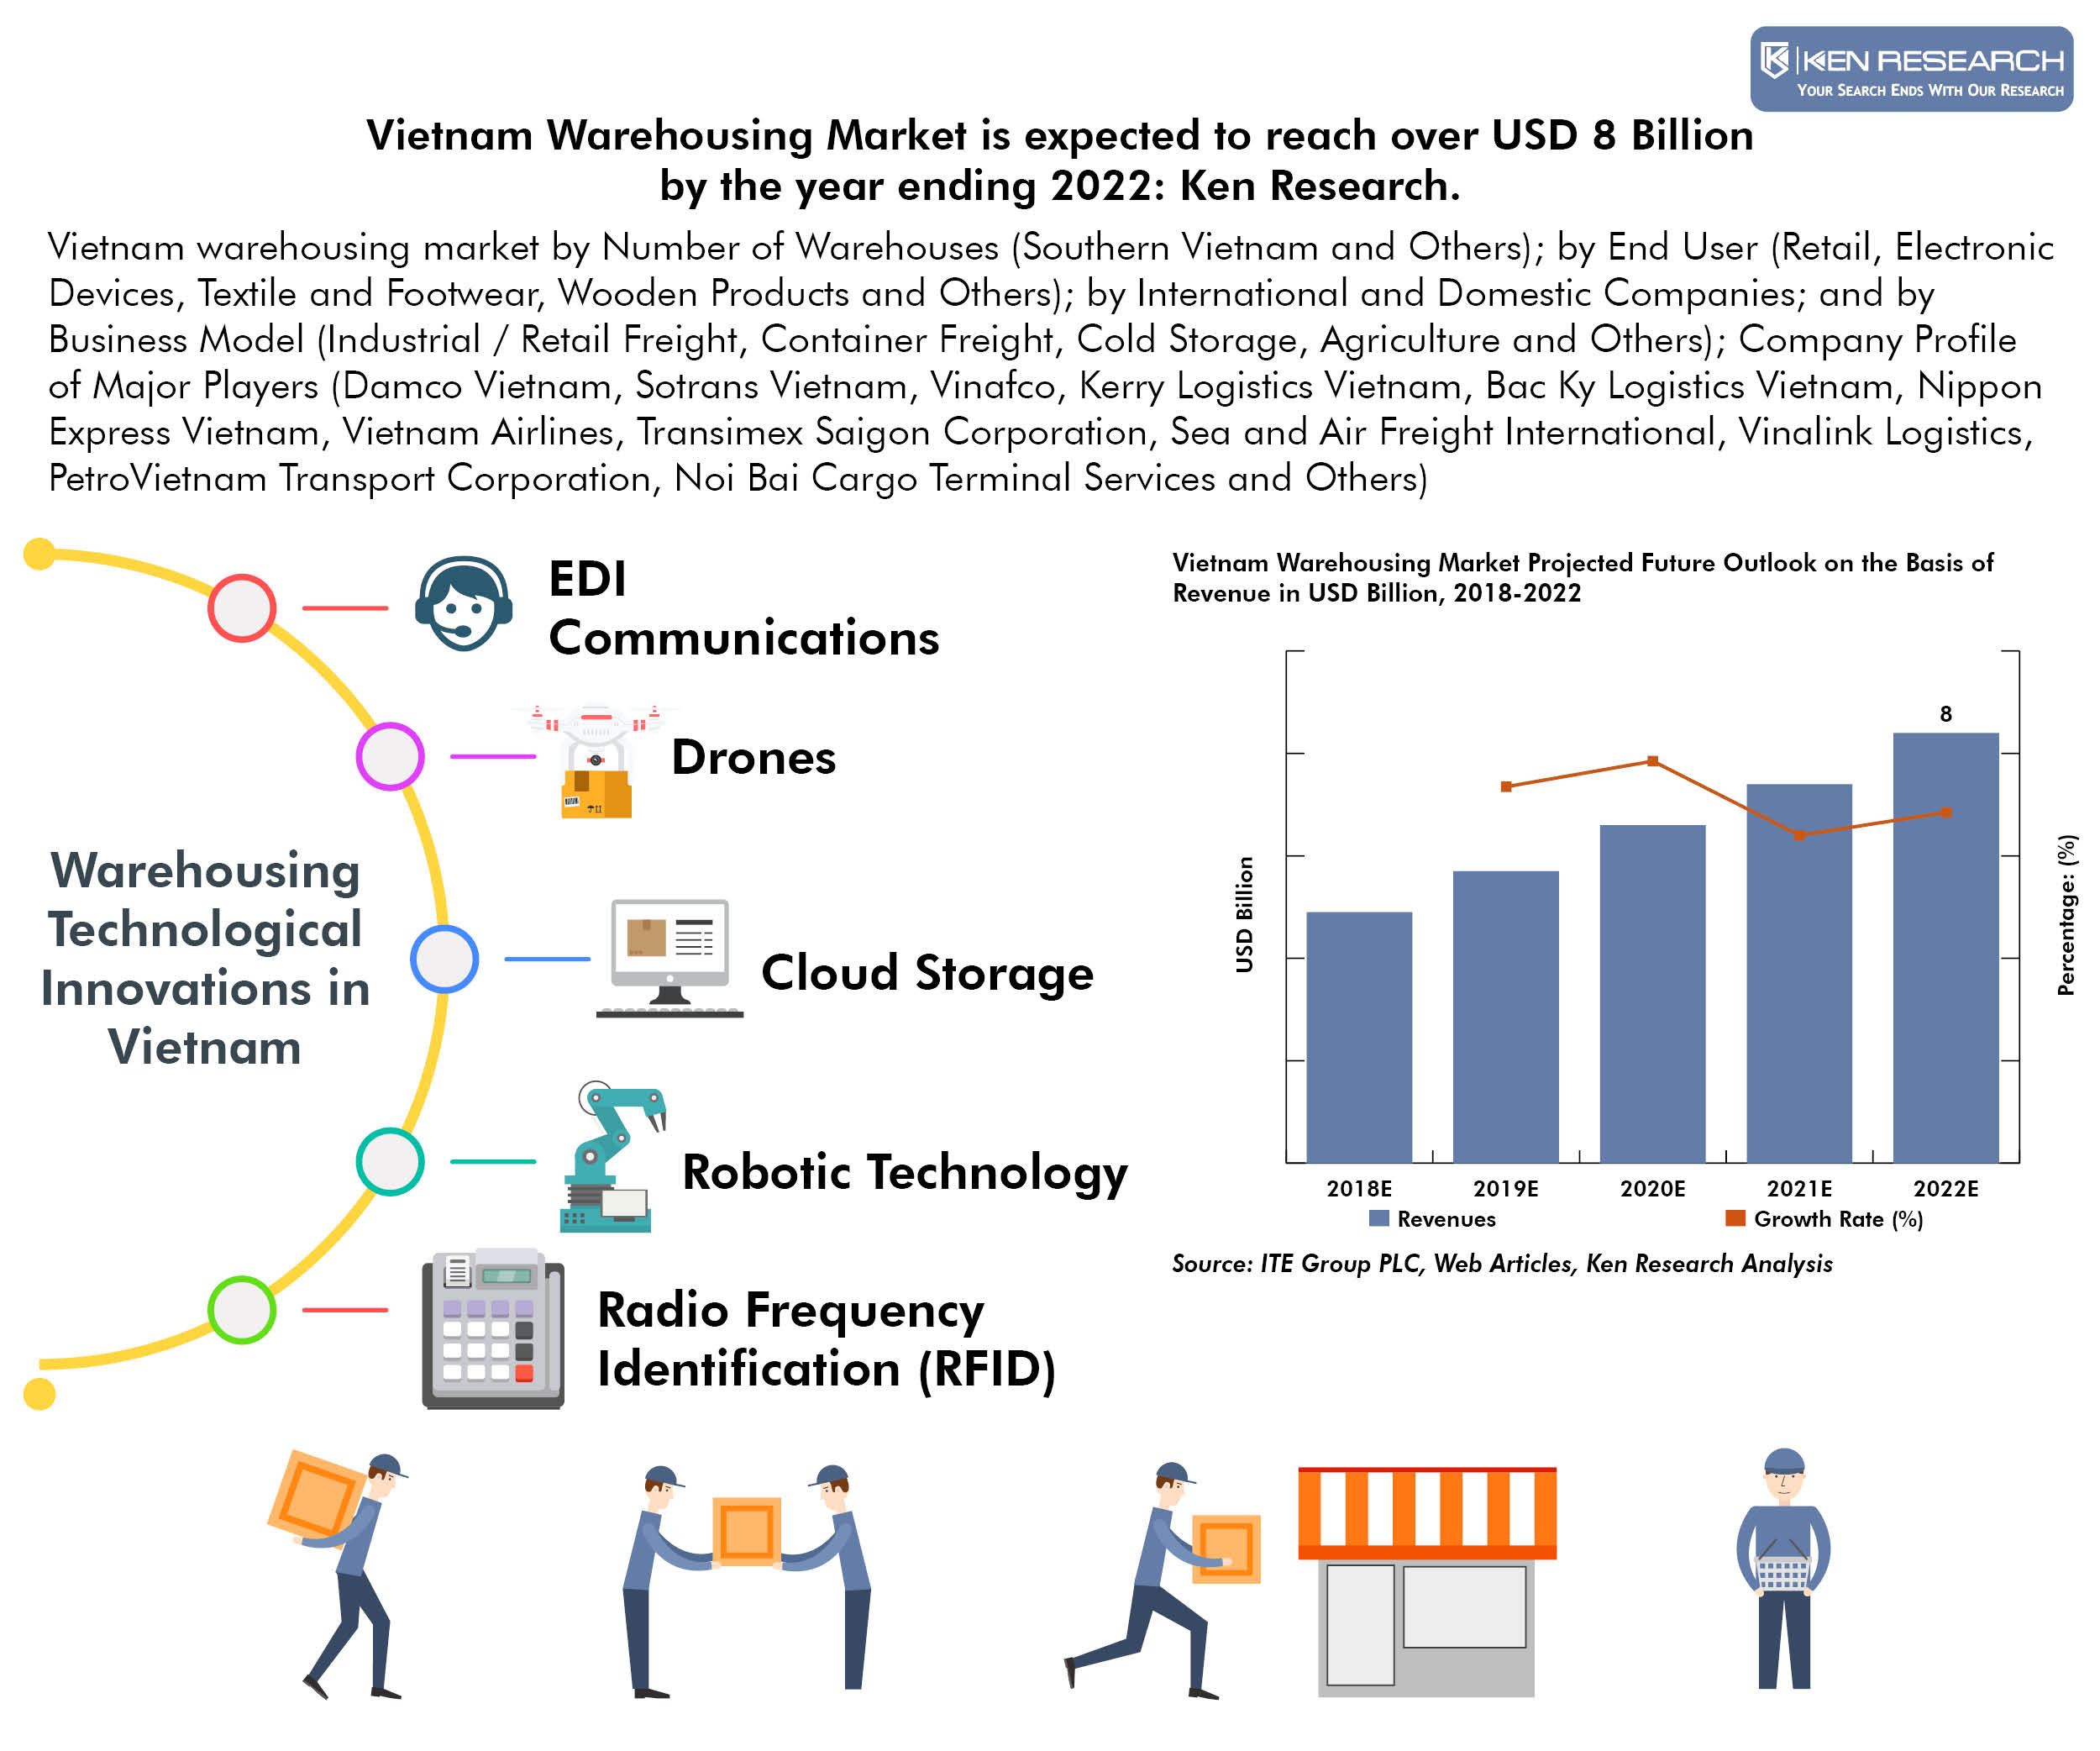 Vietnam Warehousing Market Research